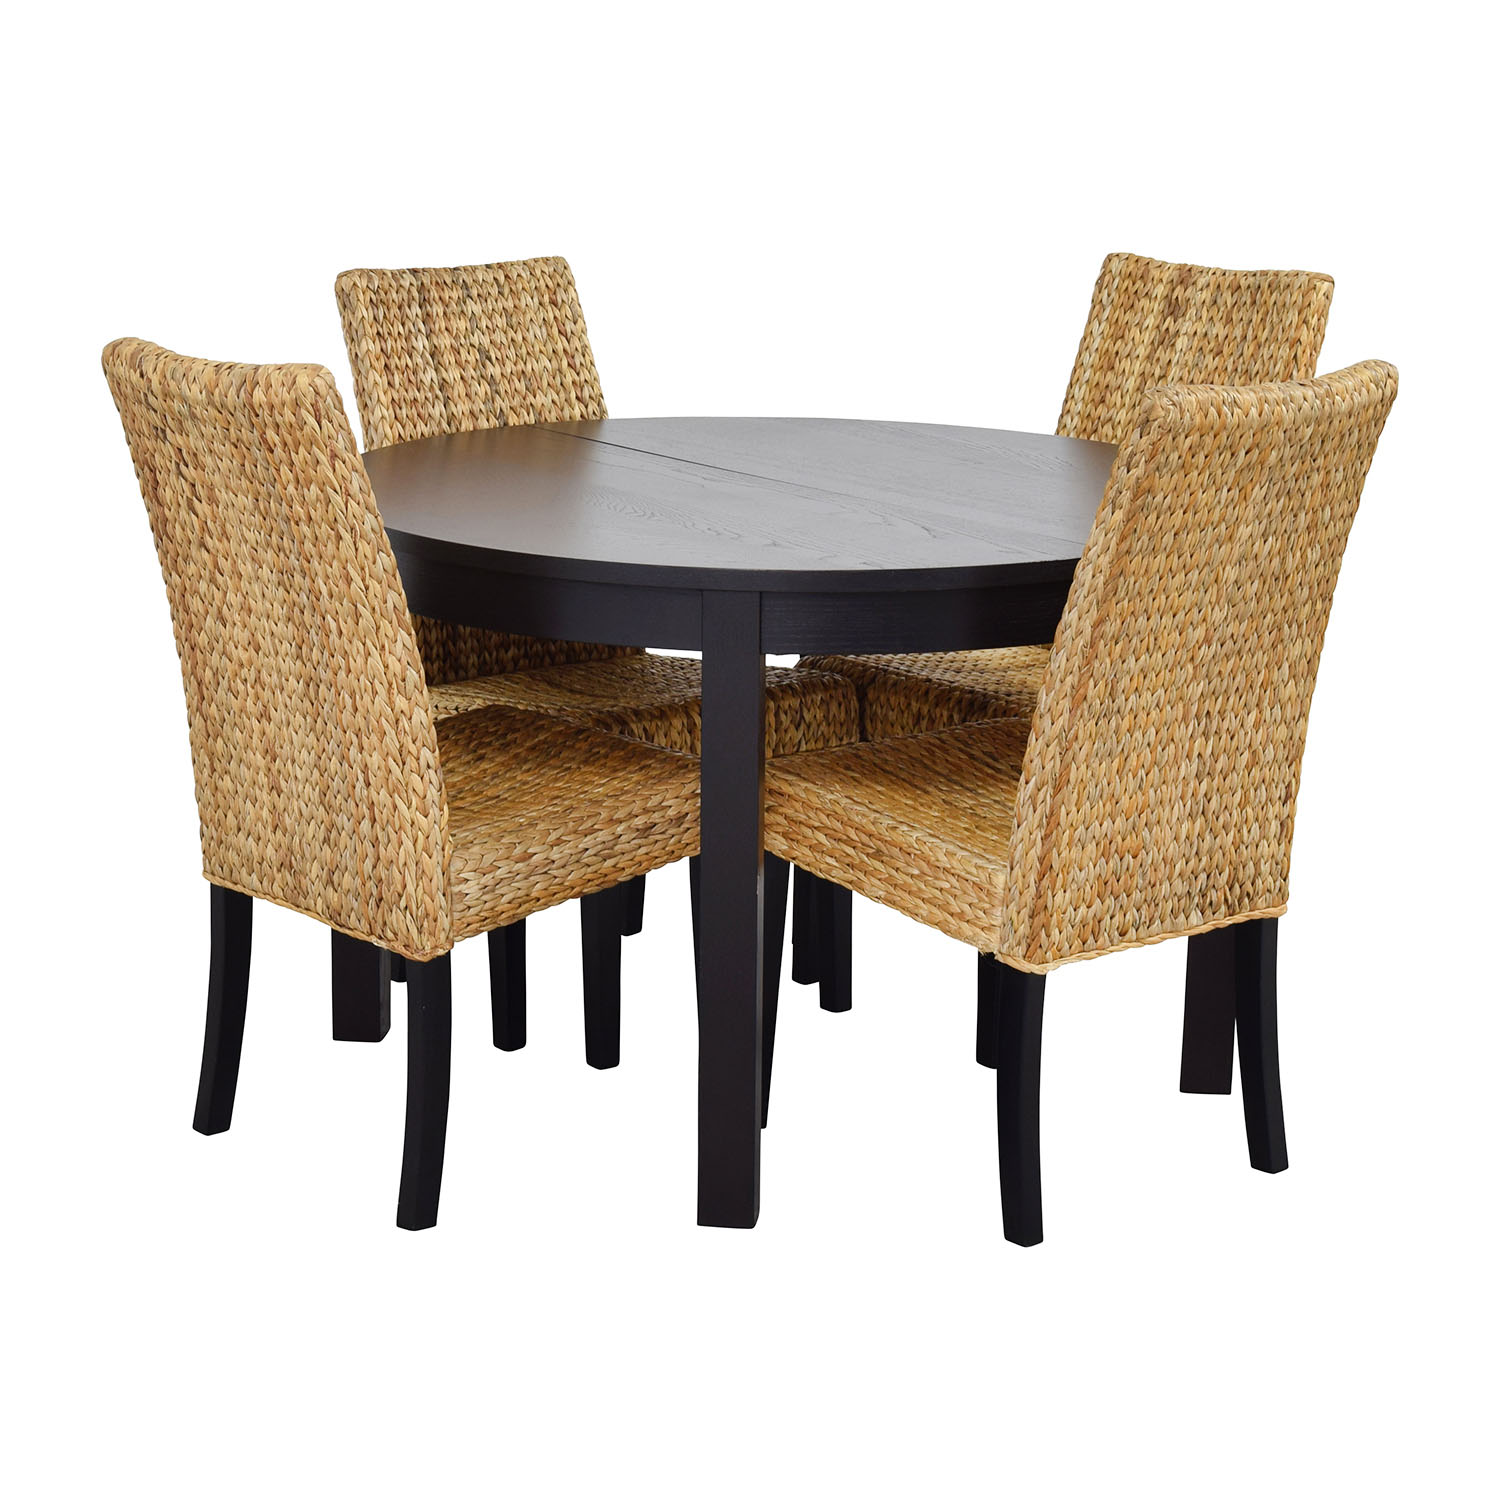 66 off macy 39 s ikea round black dining table set with for Black dining sets with 4 chairs